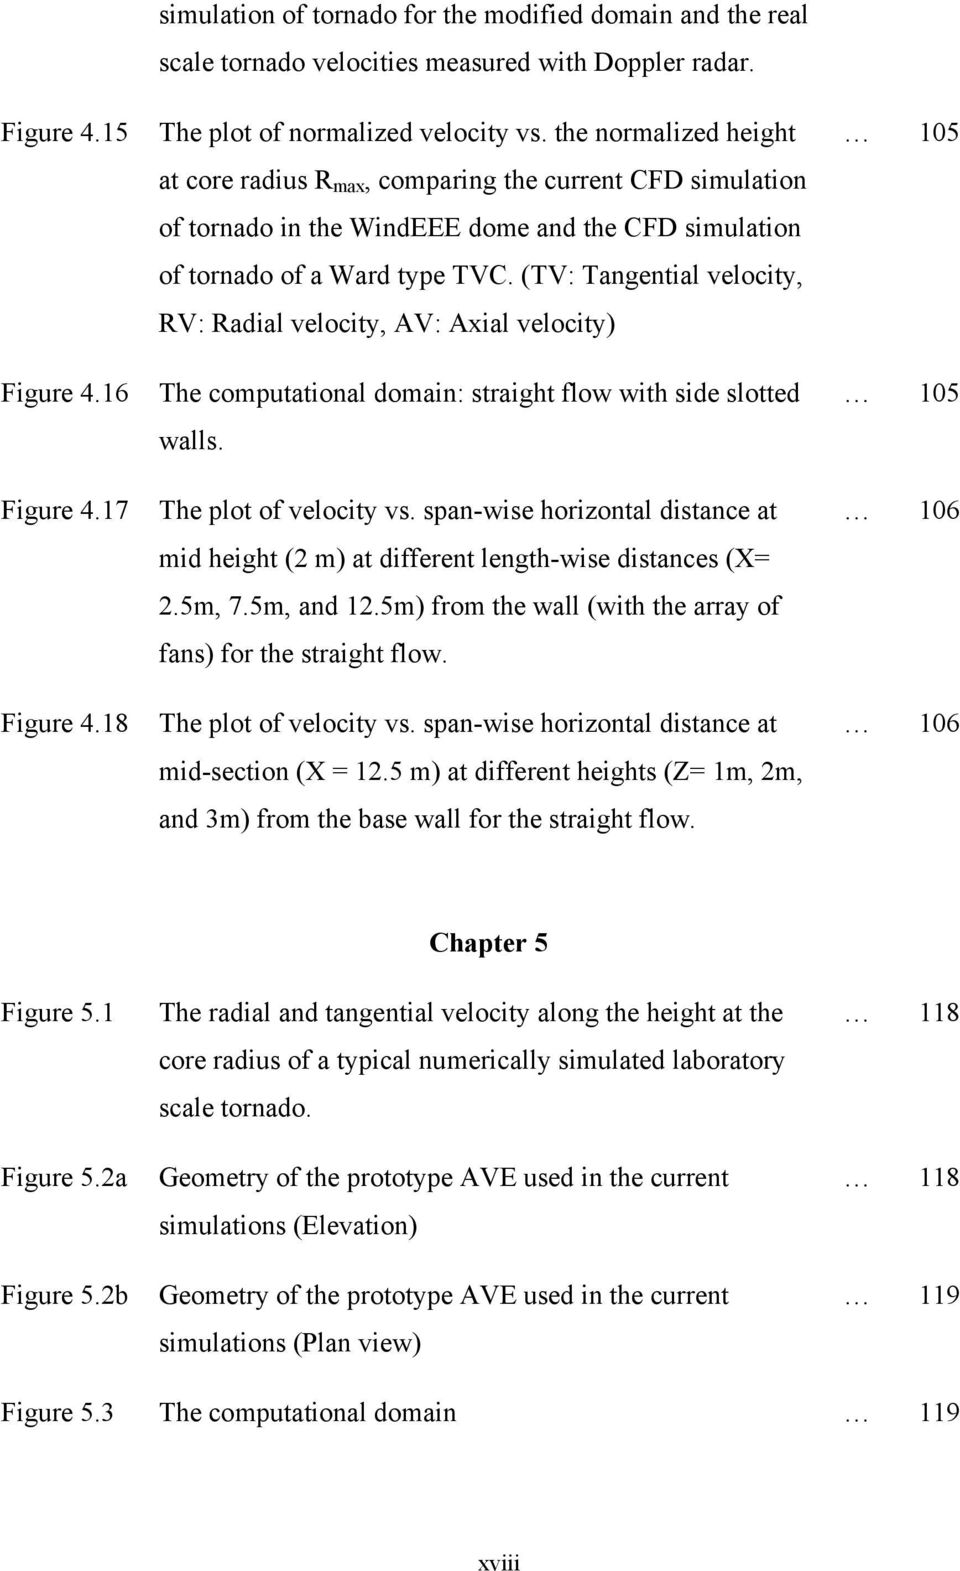 (TV: Tangential velocity, RV: Radial velocity, AV: Axial velocity The computational domain: straight flow with side slotted walls. The plot of velocity vs.